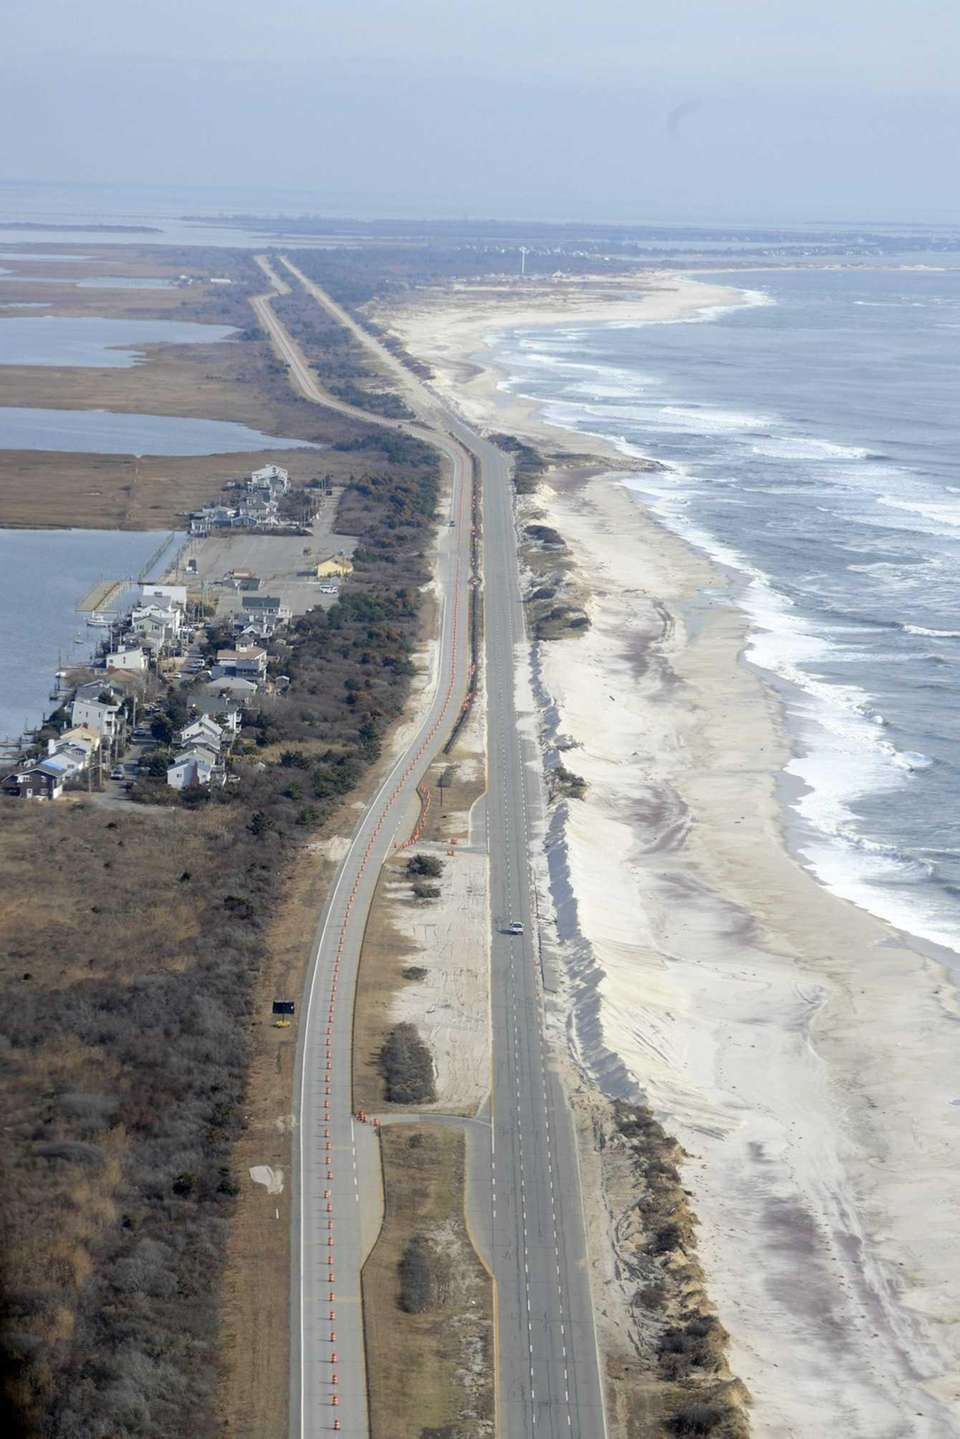 Master builder Robert Moses wanted Ocean Parkway to